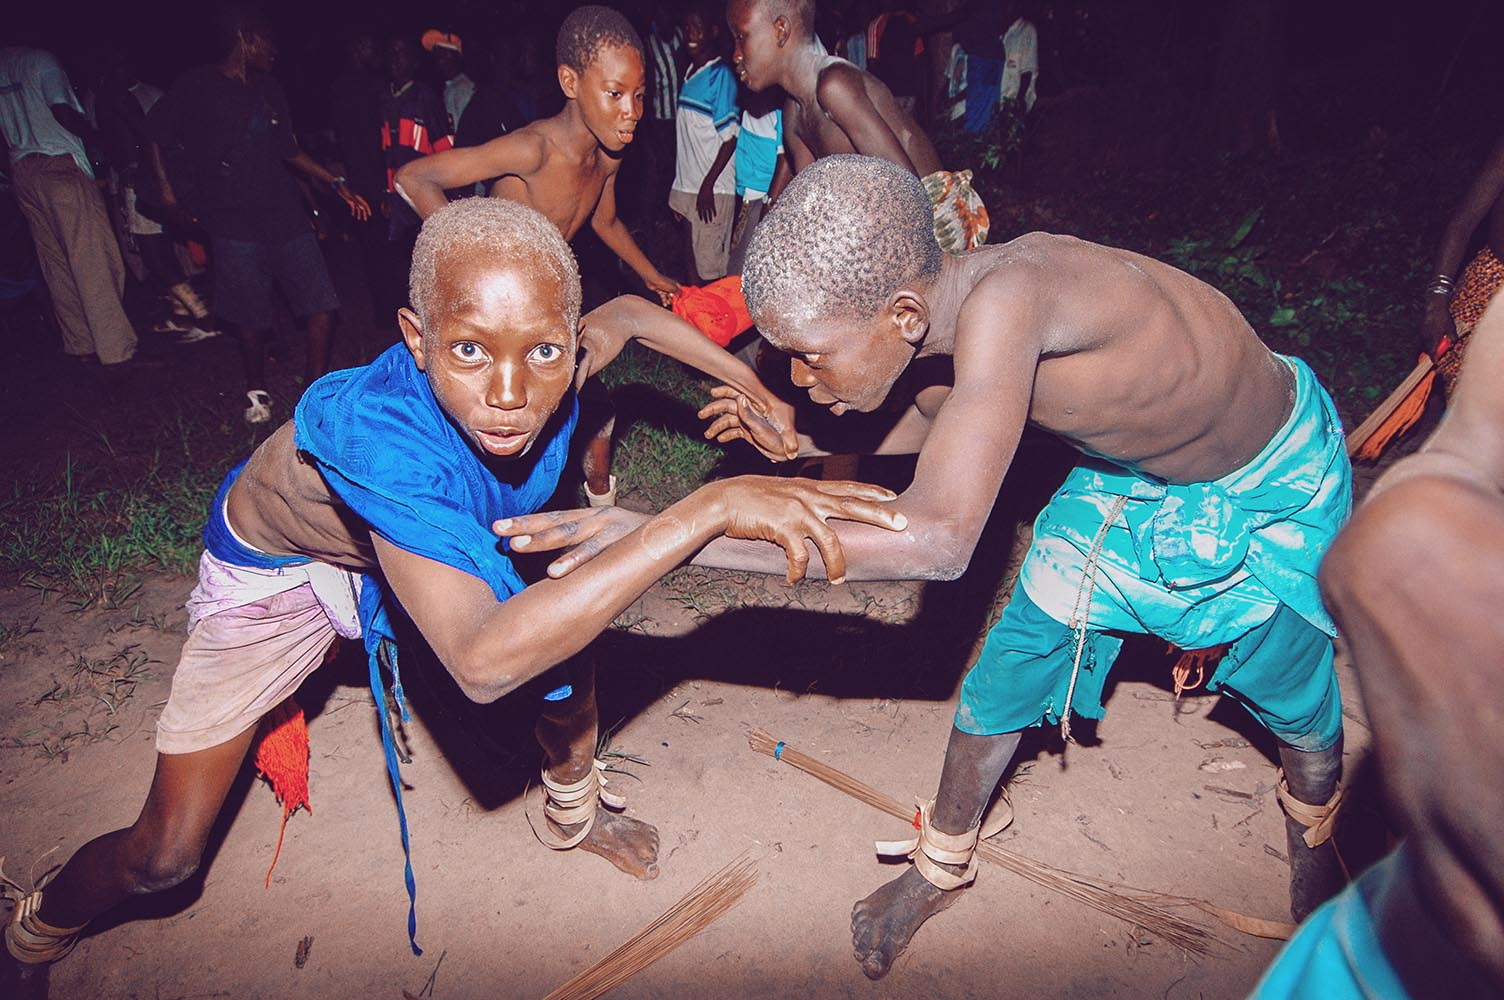 SENEGAL - SEPTEMBER 19: Kids in the traditional struggle (wrestl